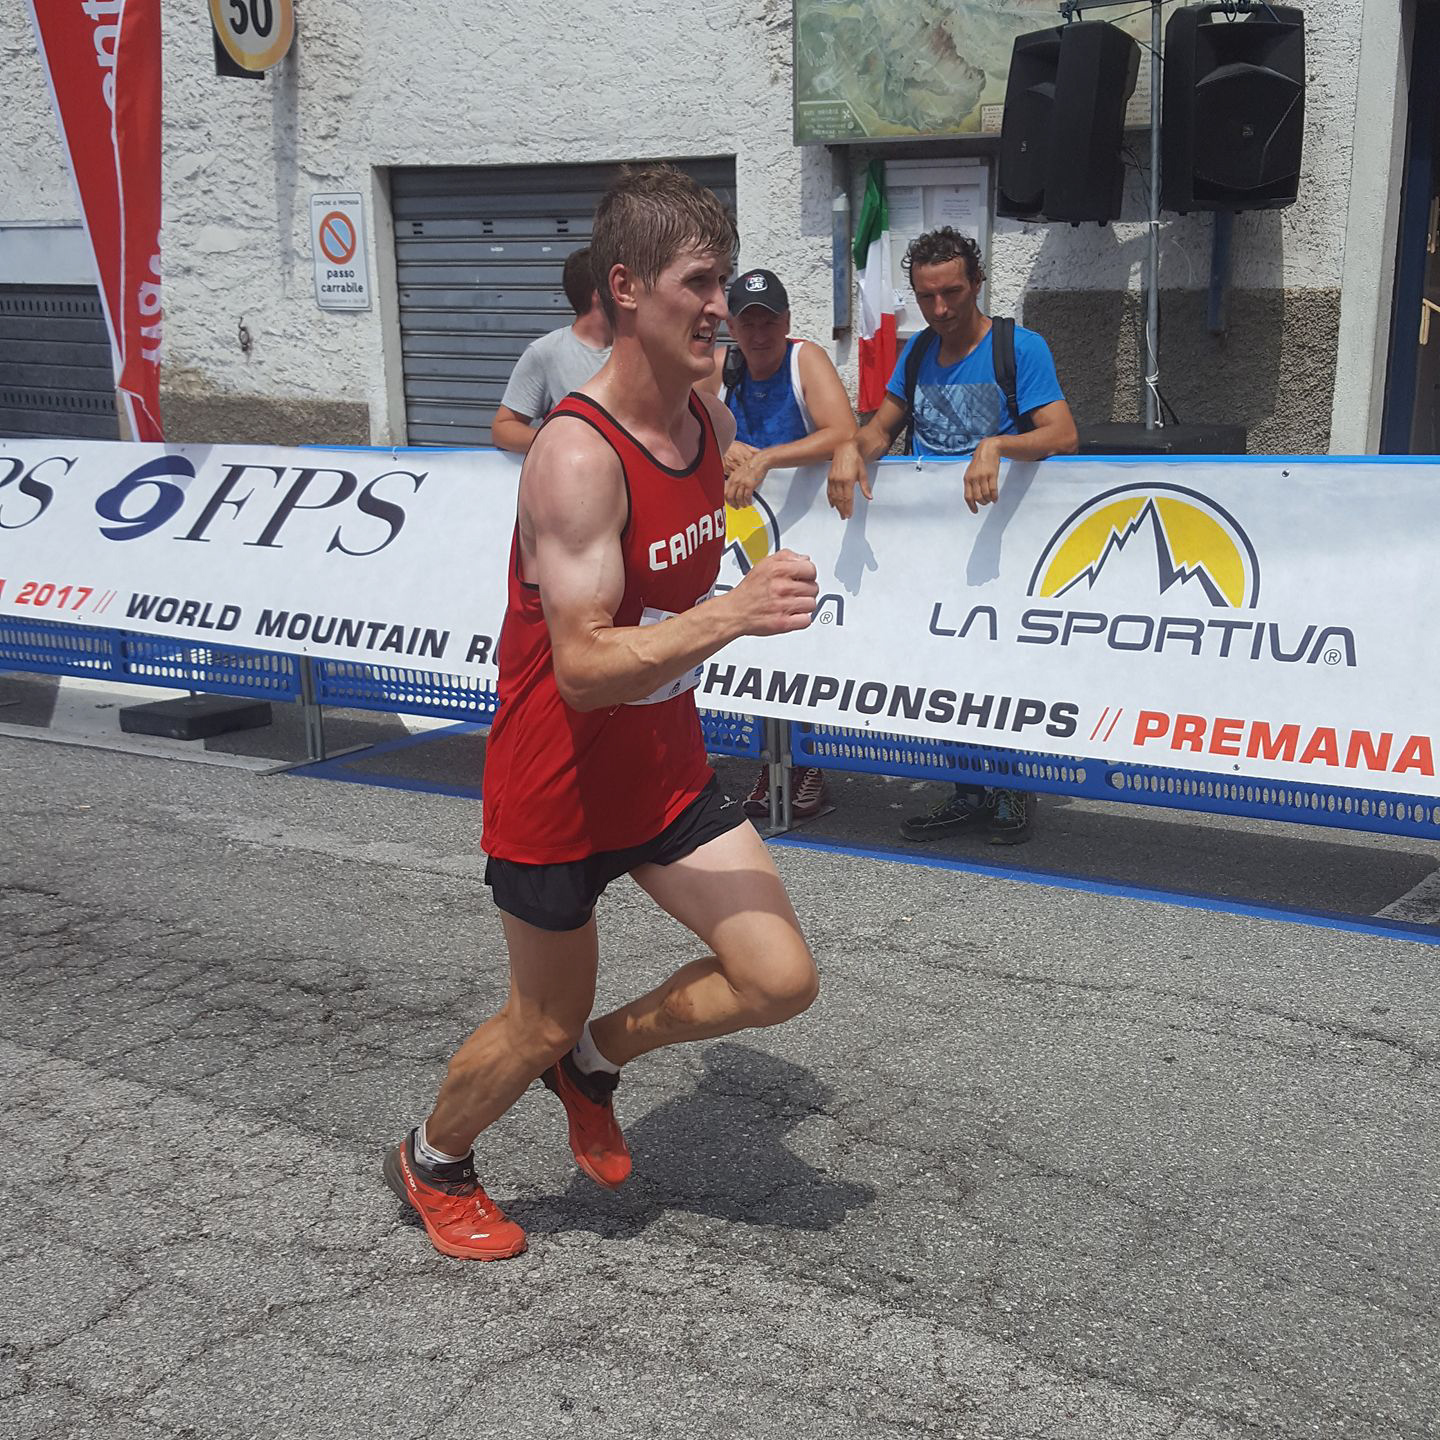 Matt Setlack at the finish of the World Mountain Running Championships in Premana, Italy